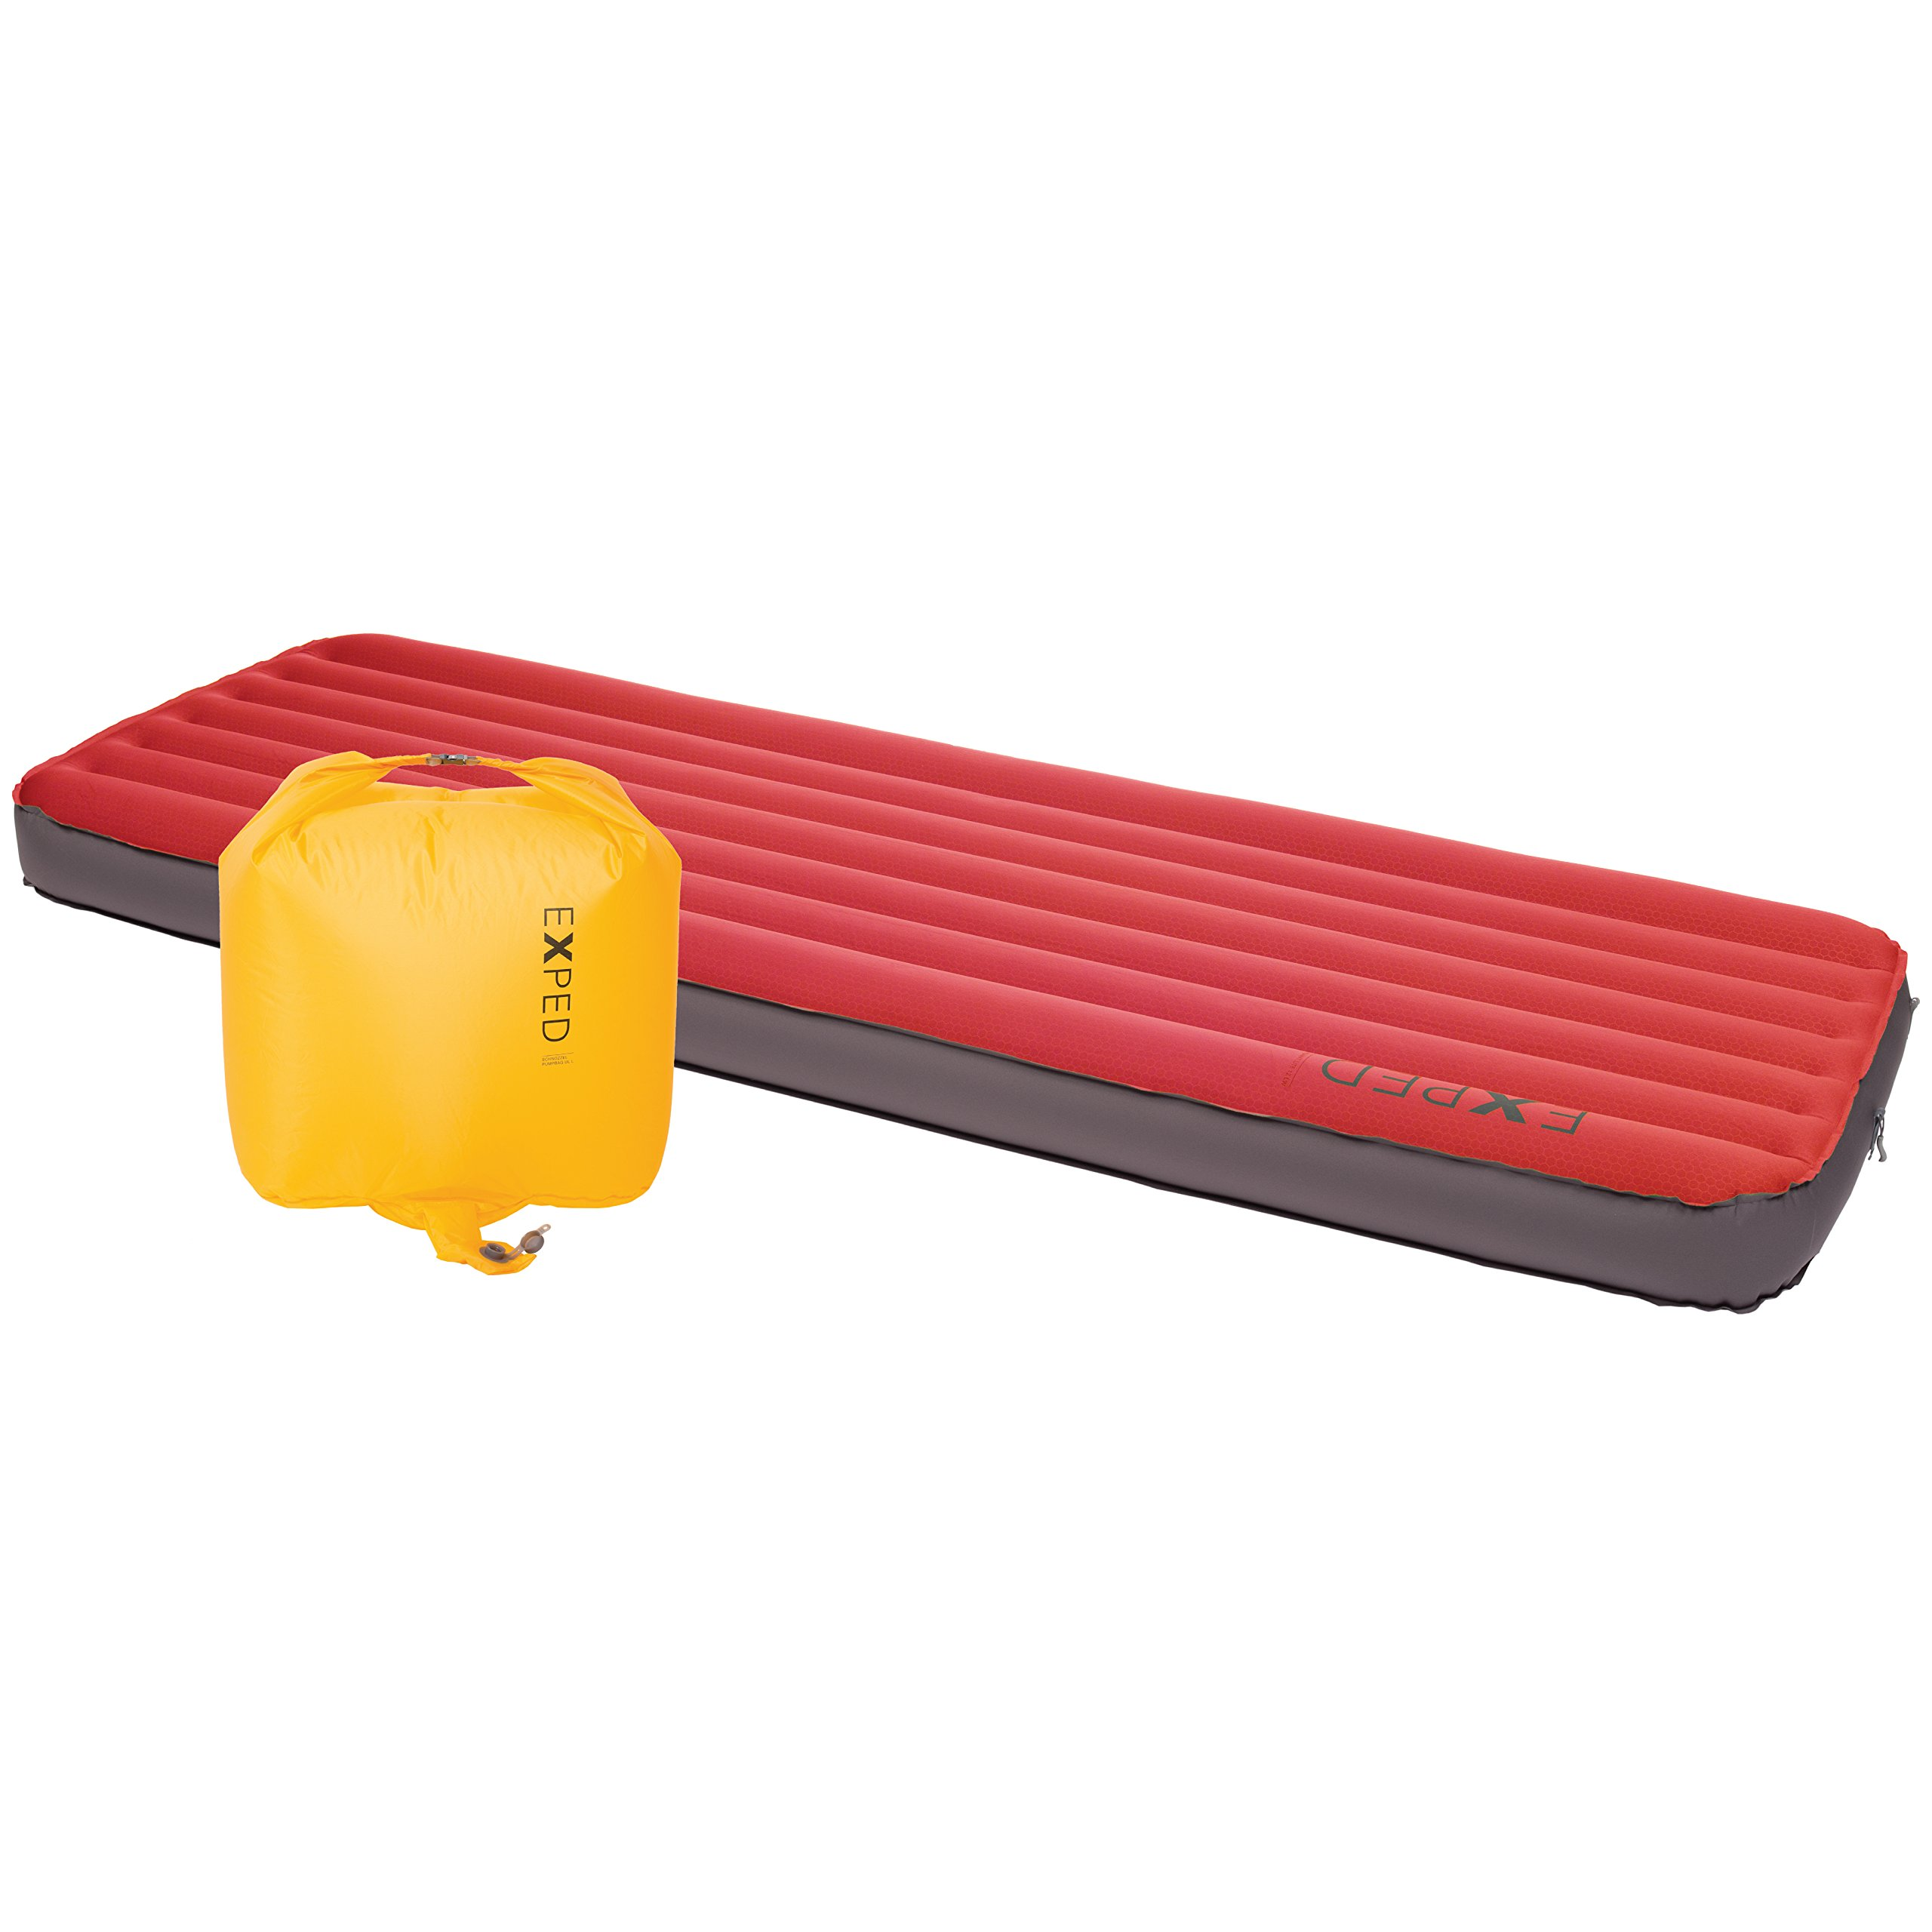 Exped MegaMat Lite 12 Sleeping Pad, Ruby Red, Large Wide by Exped